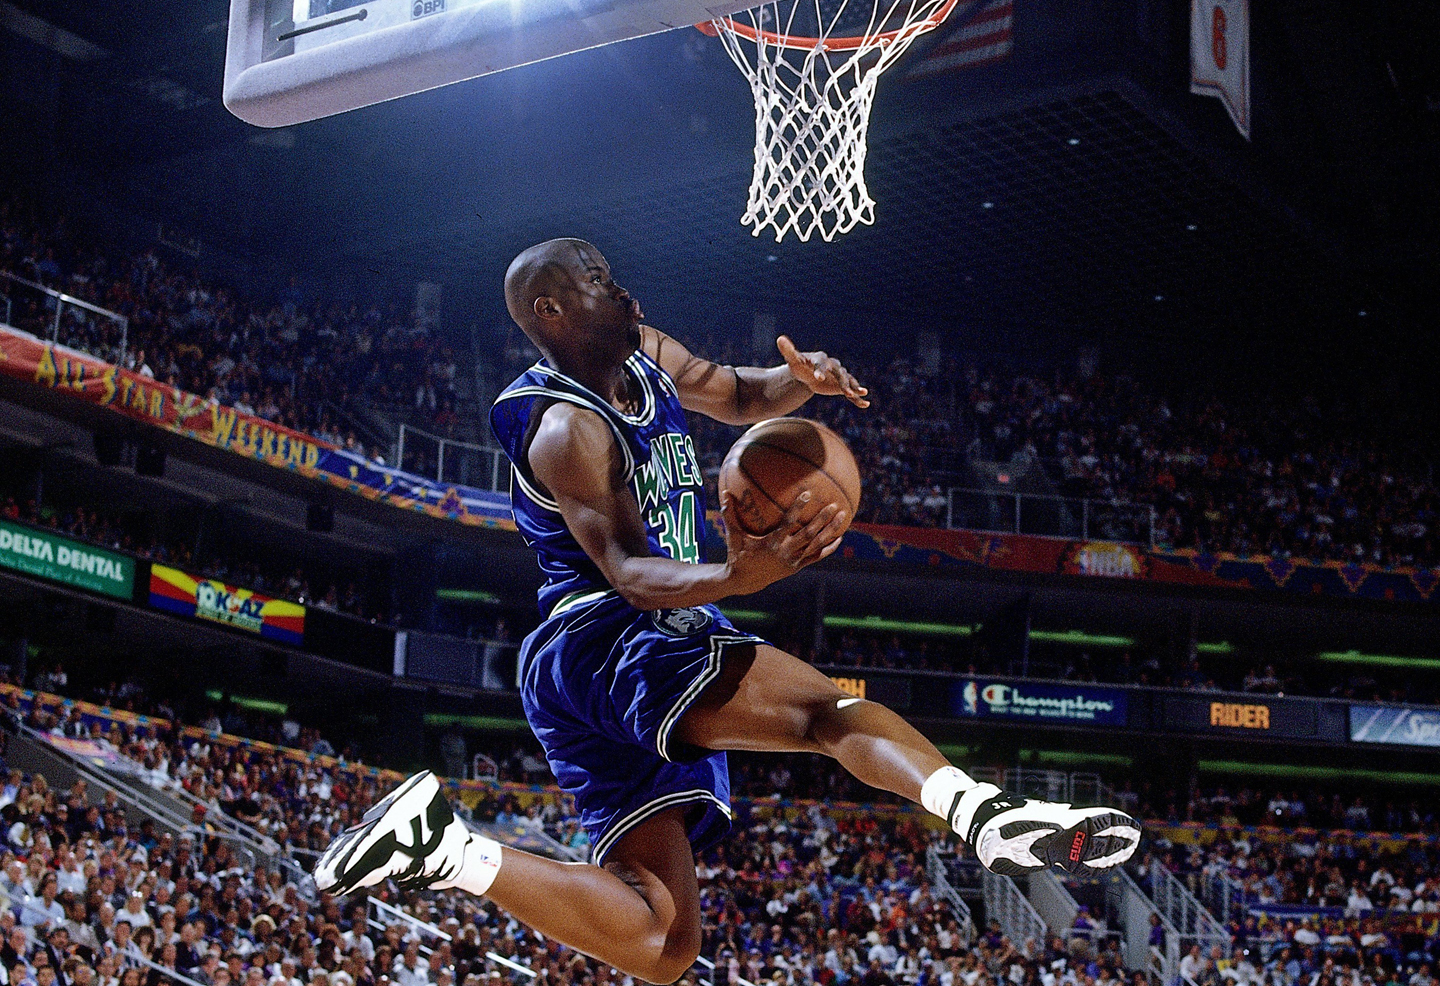 Isaiah Rider #34 of Minnesota Timberwolves attempts a dunk during the 1995 Slam Dunk Contest.